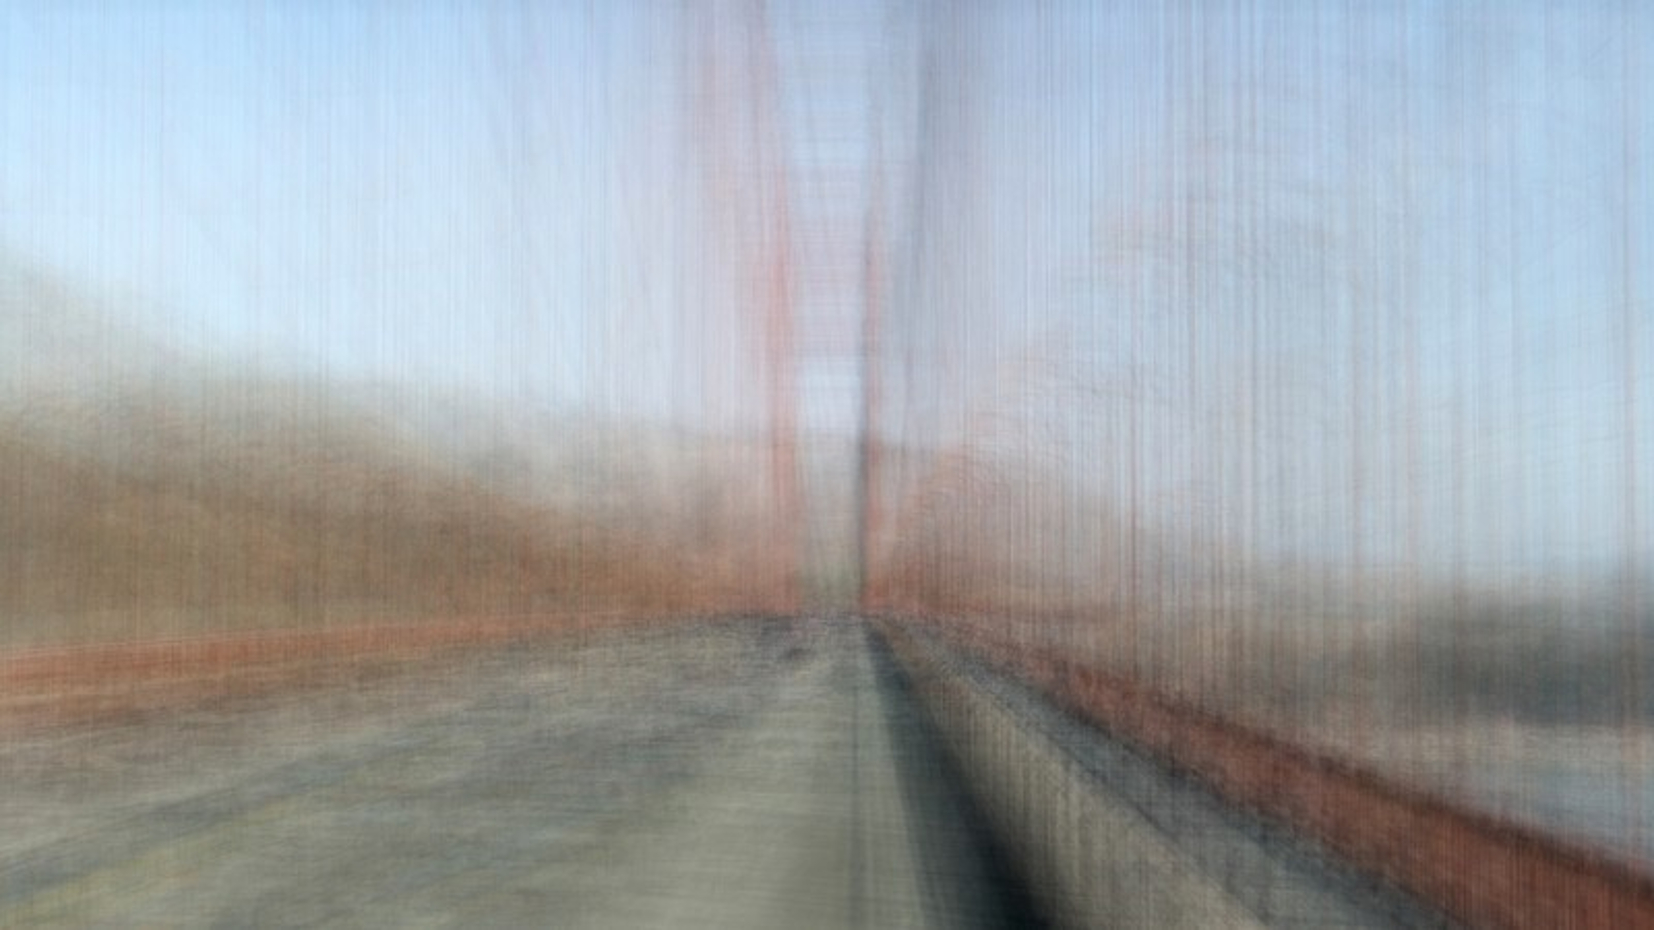 Wolf Helzle, USA Walk, Golden Gate Bridge I, 2017, Fotografische Verdichtung, 84,5 x 150 cm